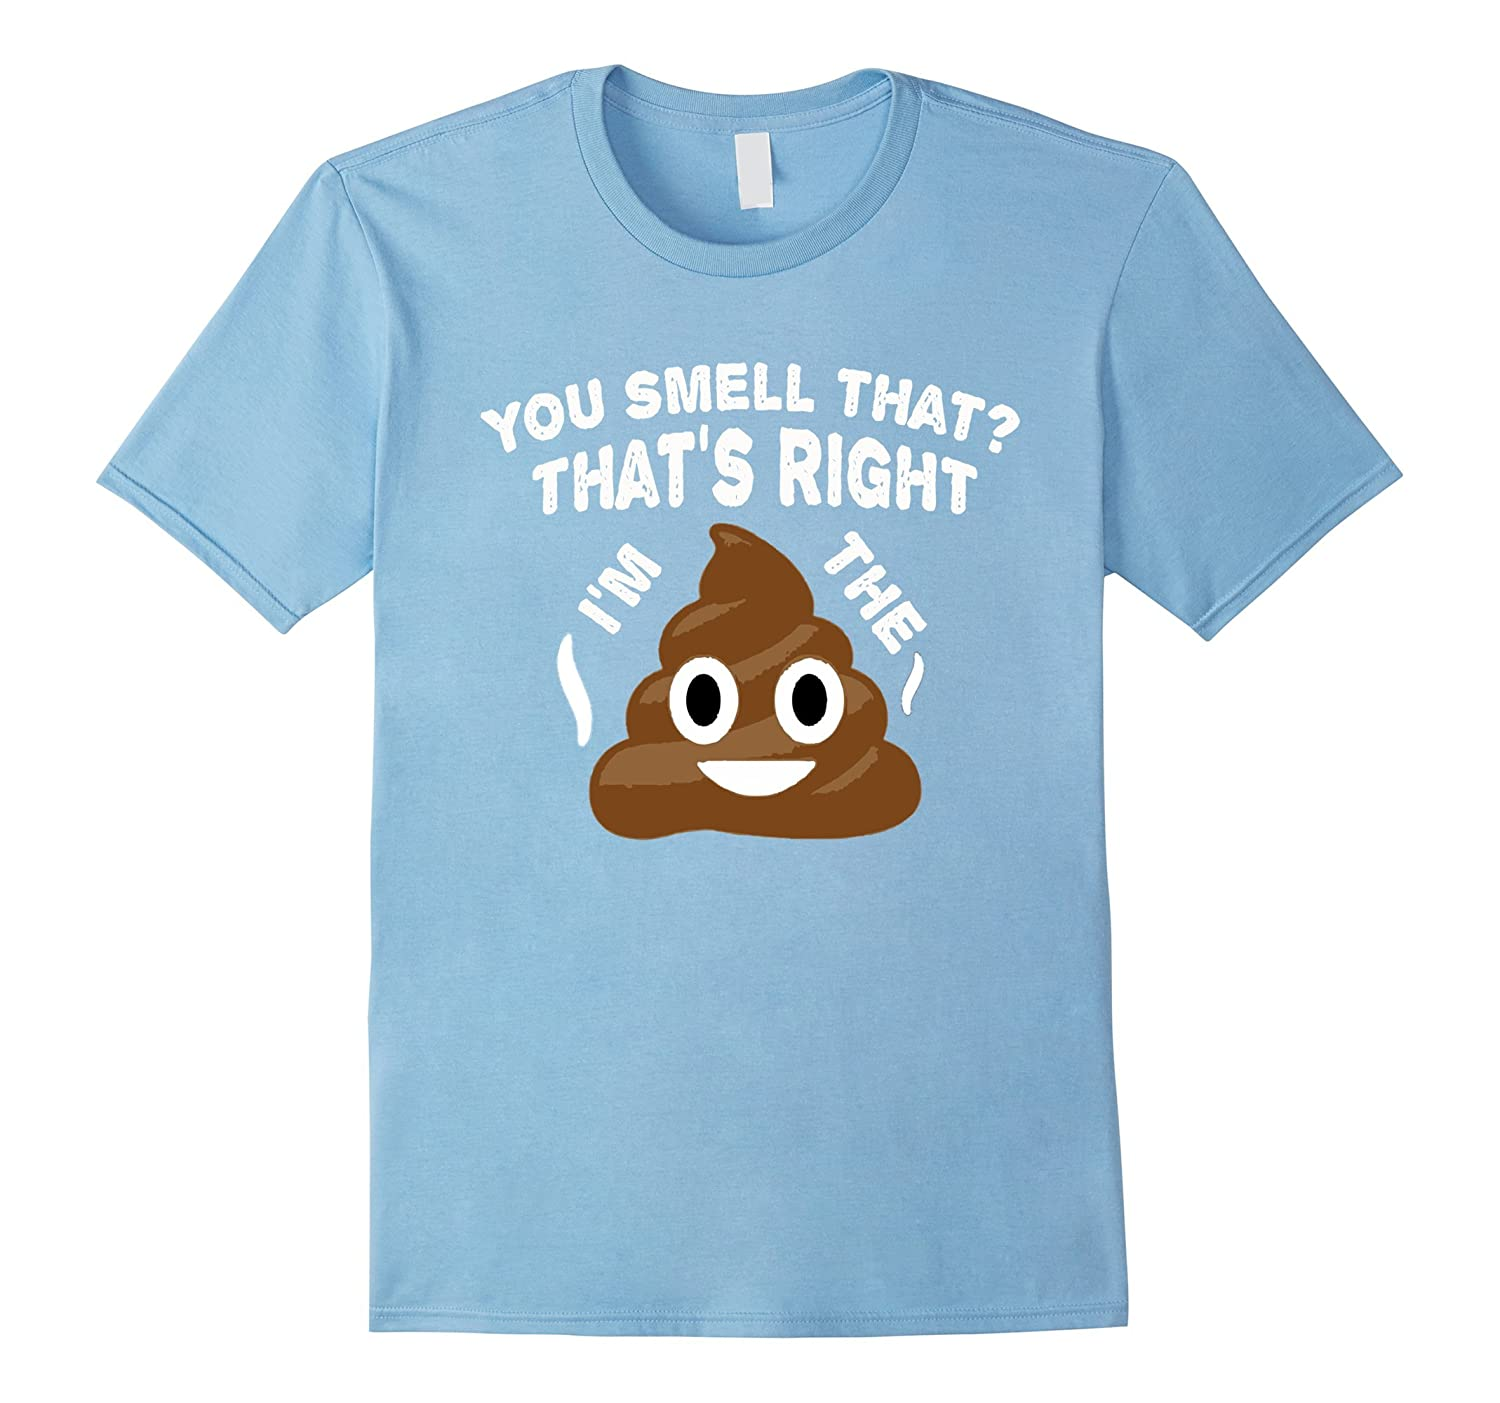 You Smell That Shirt - Funny Poop Emoji Shirt-Rose